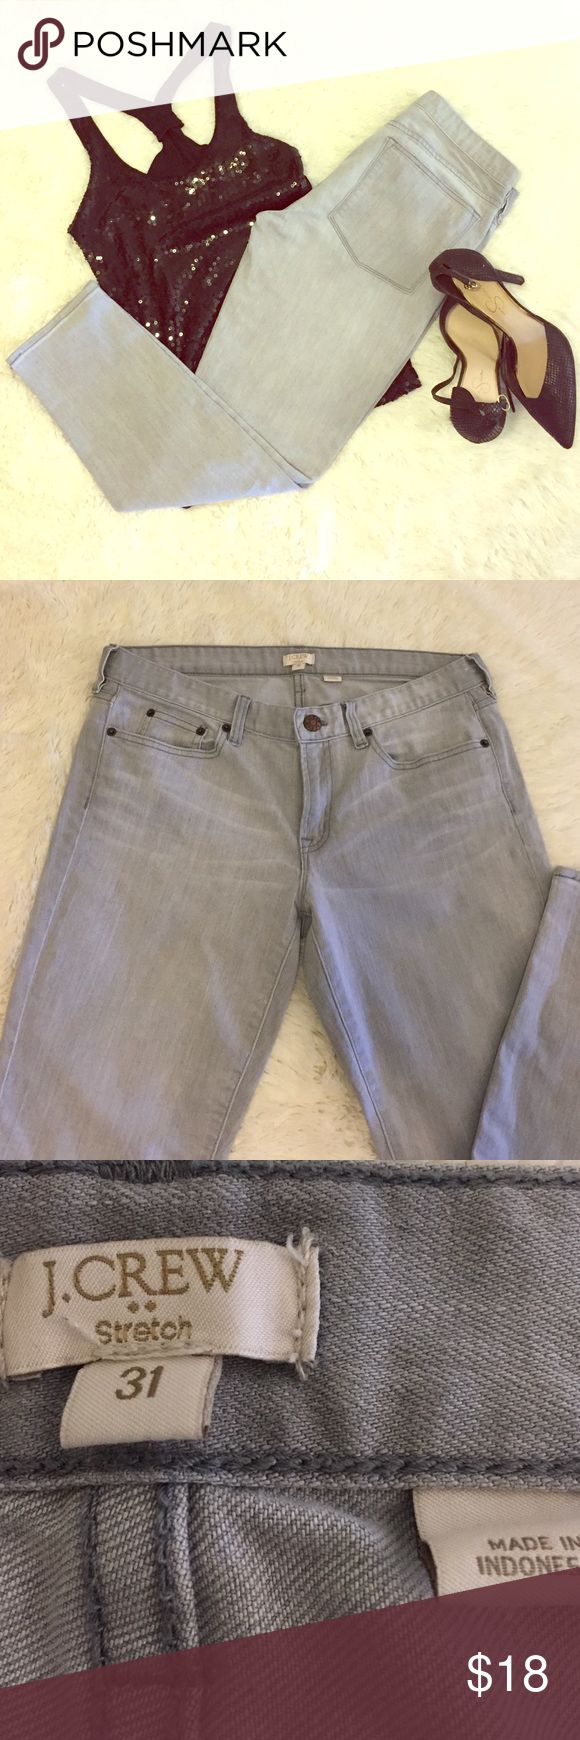 J Crew Stretch Jeans Gray Stretch Jeans.  Good Condition. No Tears or Stains. Super Cute.  Inseam 28 in. J. Crew Jeans Ankle & Cropped